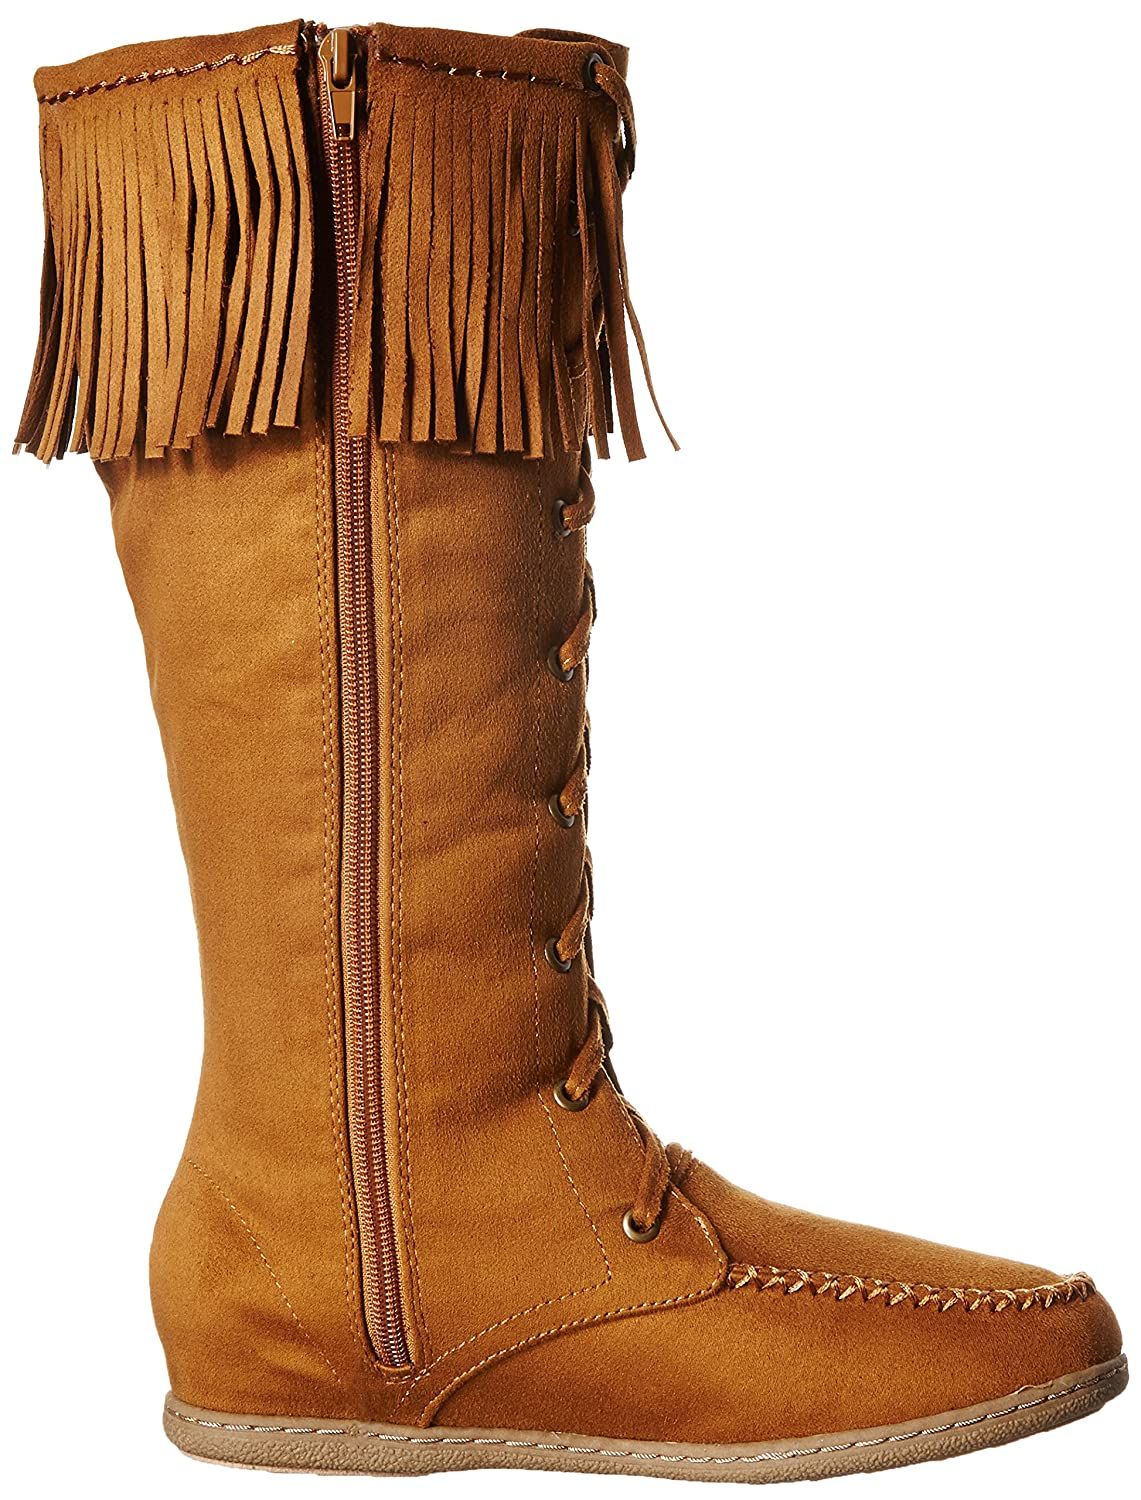 Soda Womens Vinery-S Boot Light Taupe Imitation Suede Size 9 M US